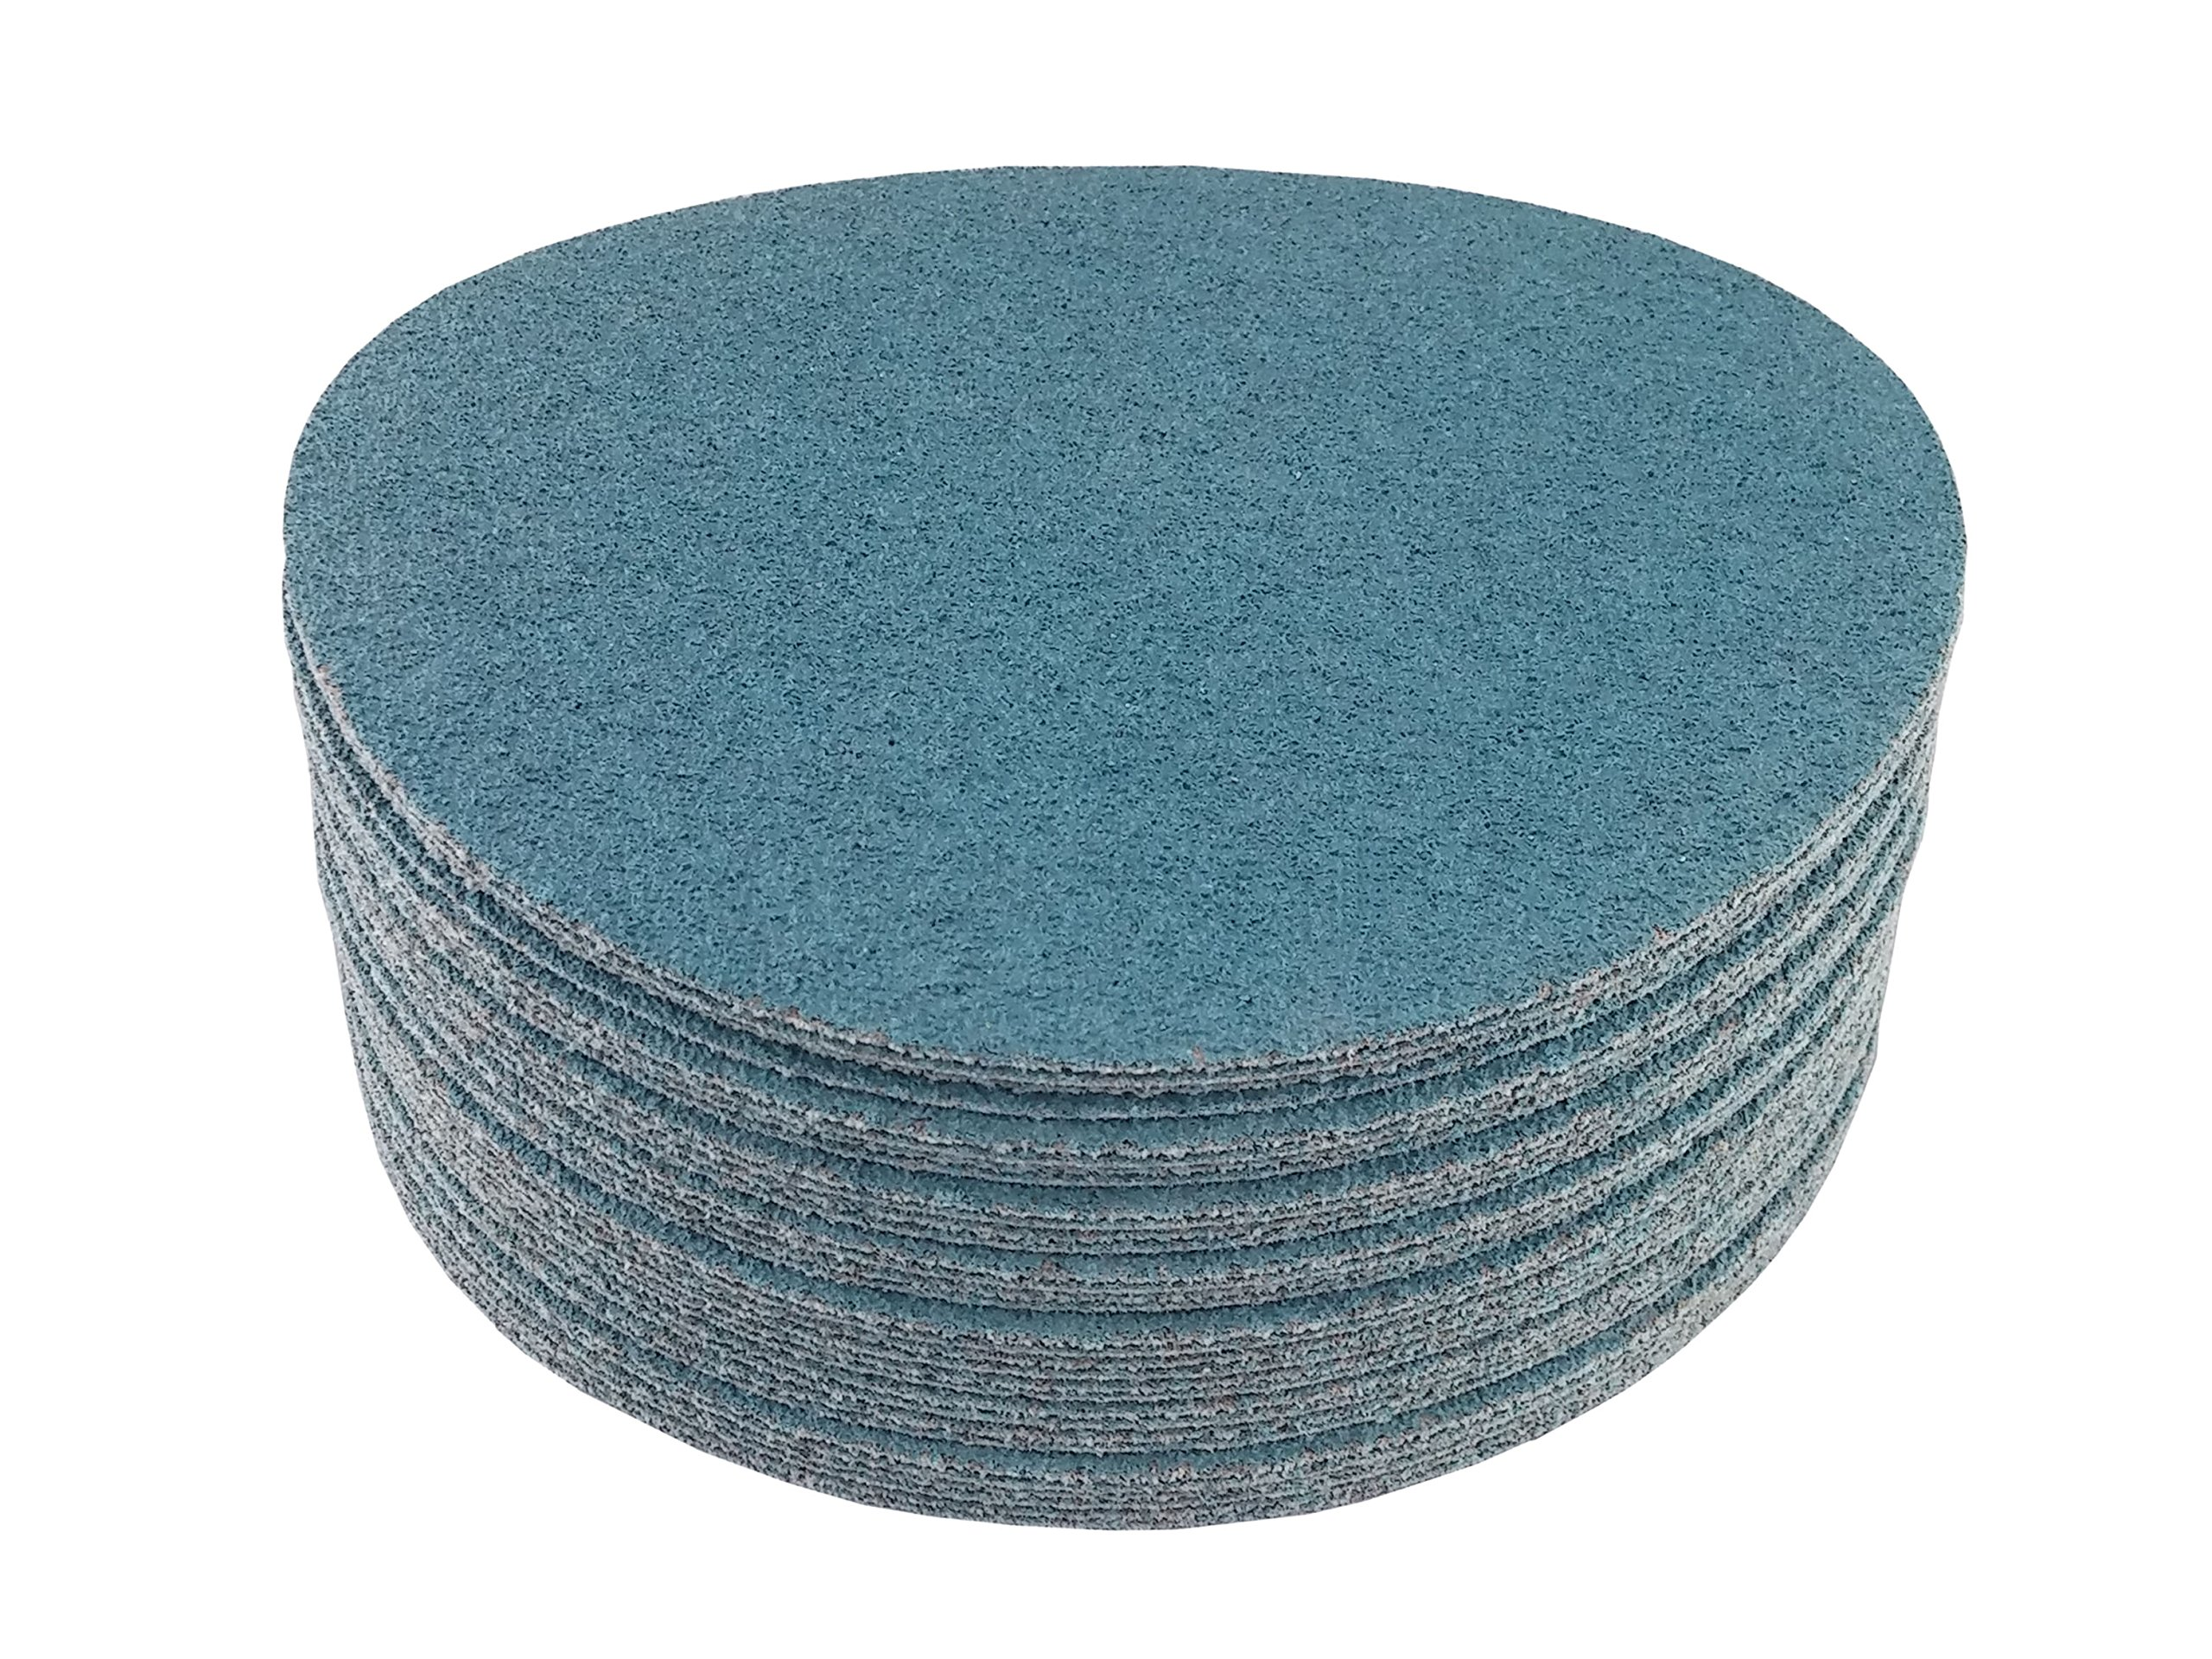 8'' Blue Zirconia Cloth Hook and Loop Sanding Discs (50 Pack, 80 Grit) by Perfect Sanding Supply by Abrasive Resource (Image #3)